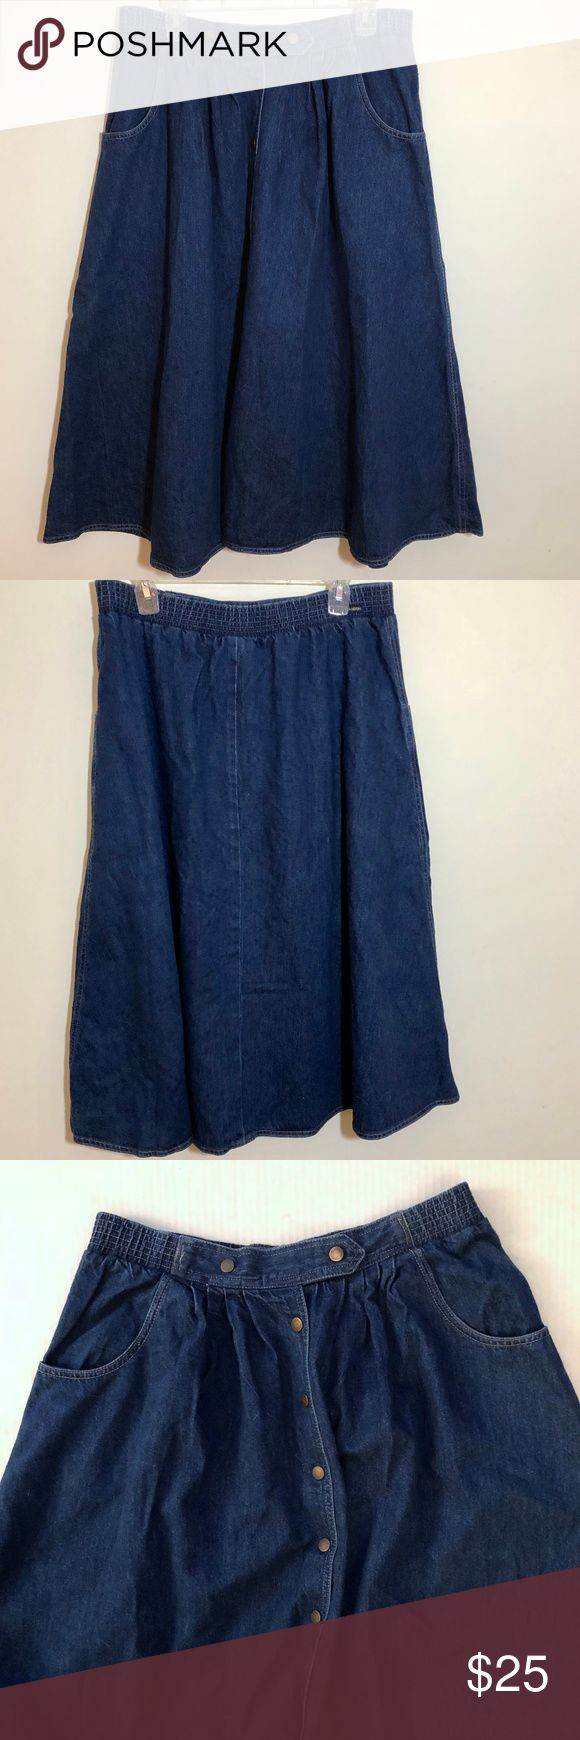 """Vintage Sasson Long Denim Flared Snap Front Skirt Sasson Skirt Size 14 Waist: 33"""" (unstretched) Length: 32"""" 100% Cotton Machine washable Blue Denim Full Snap Front Elastic Waist Two Front Pockets Flared Gently used pre-owned condition. No holes or stains. The snaps show some tarnish. Sasson Skirts"""